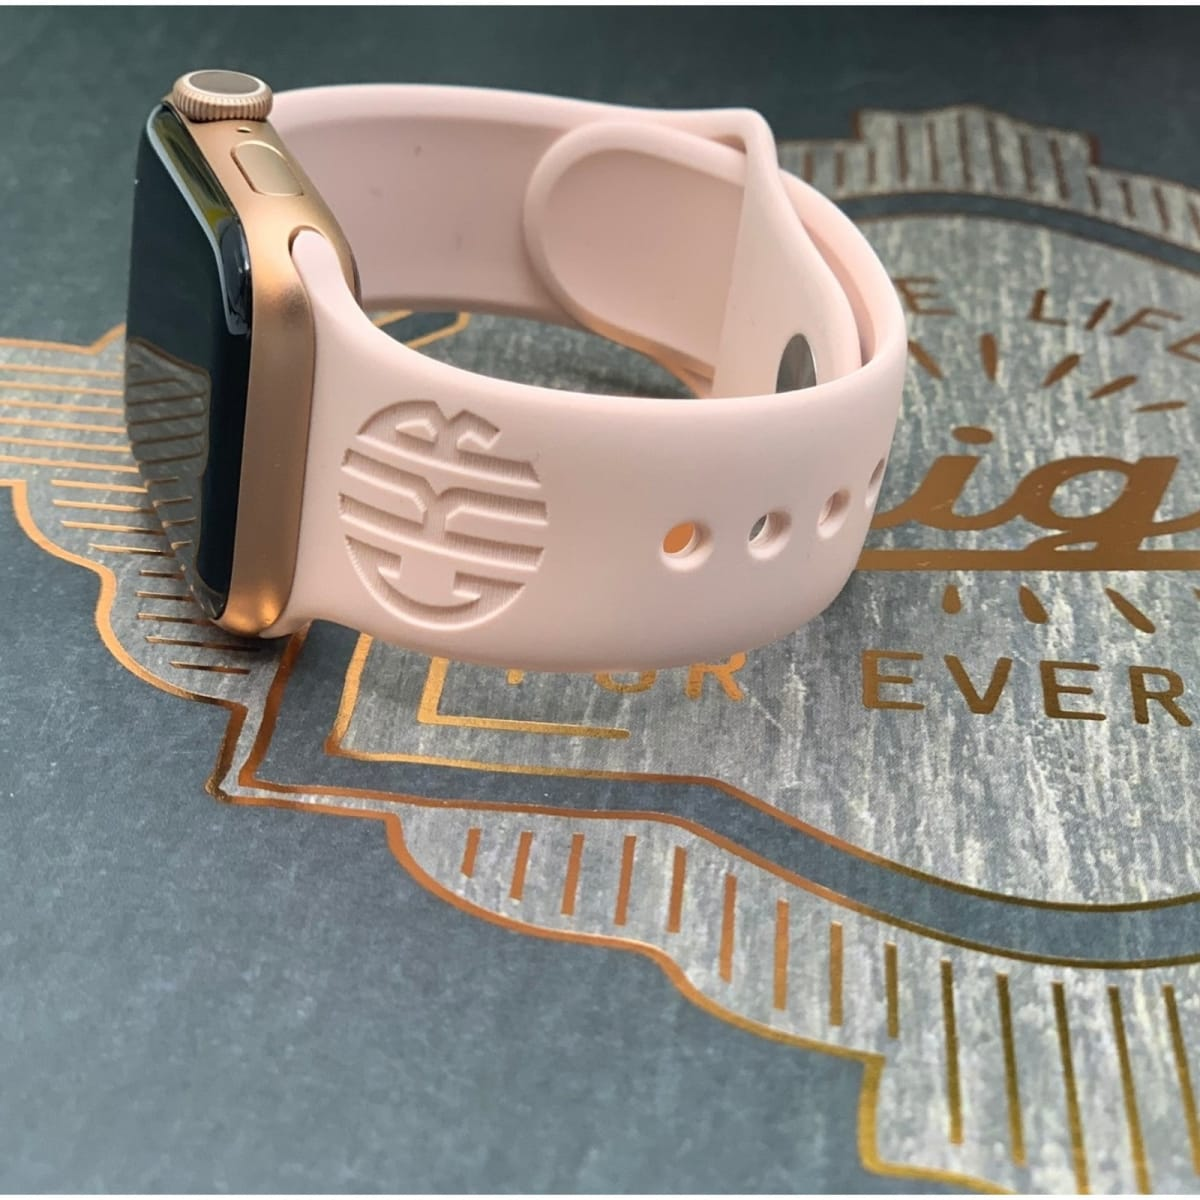 Personalized Apple Watch Band Only $13.99 Shipped!